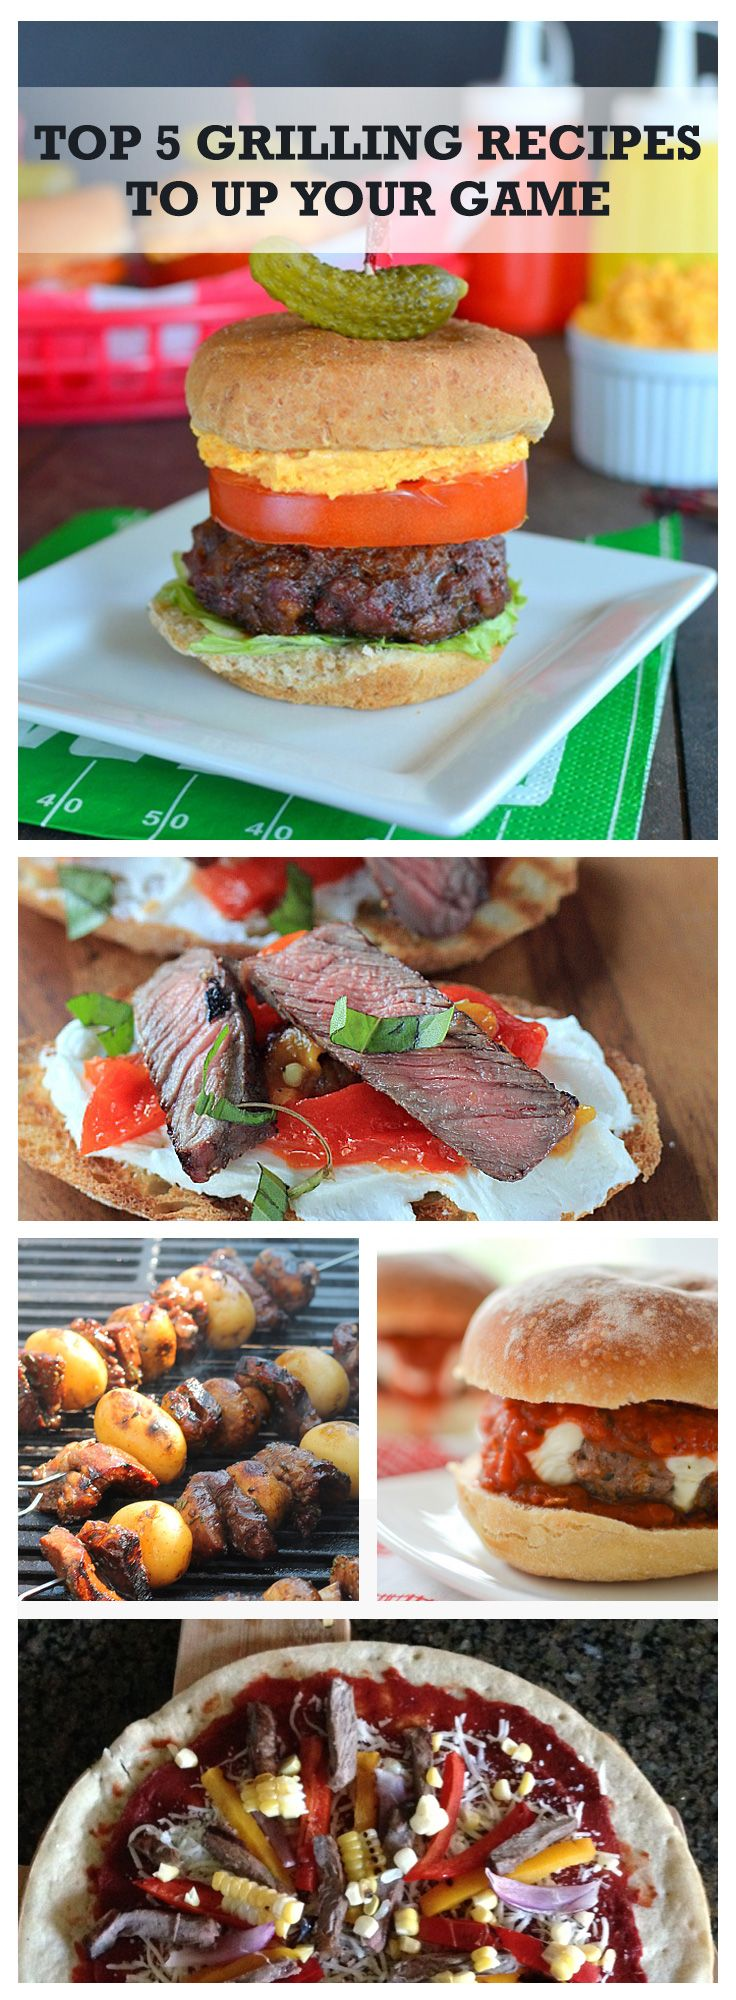 There are so many delicious ways to grill on game day! Try our top 5 grilling recipes from sliders to kabobs to grilled fajita pizza and more! It all starts with Walmart beef and Kingsford® Charcoal from your local Walmart.